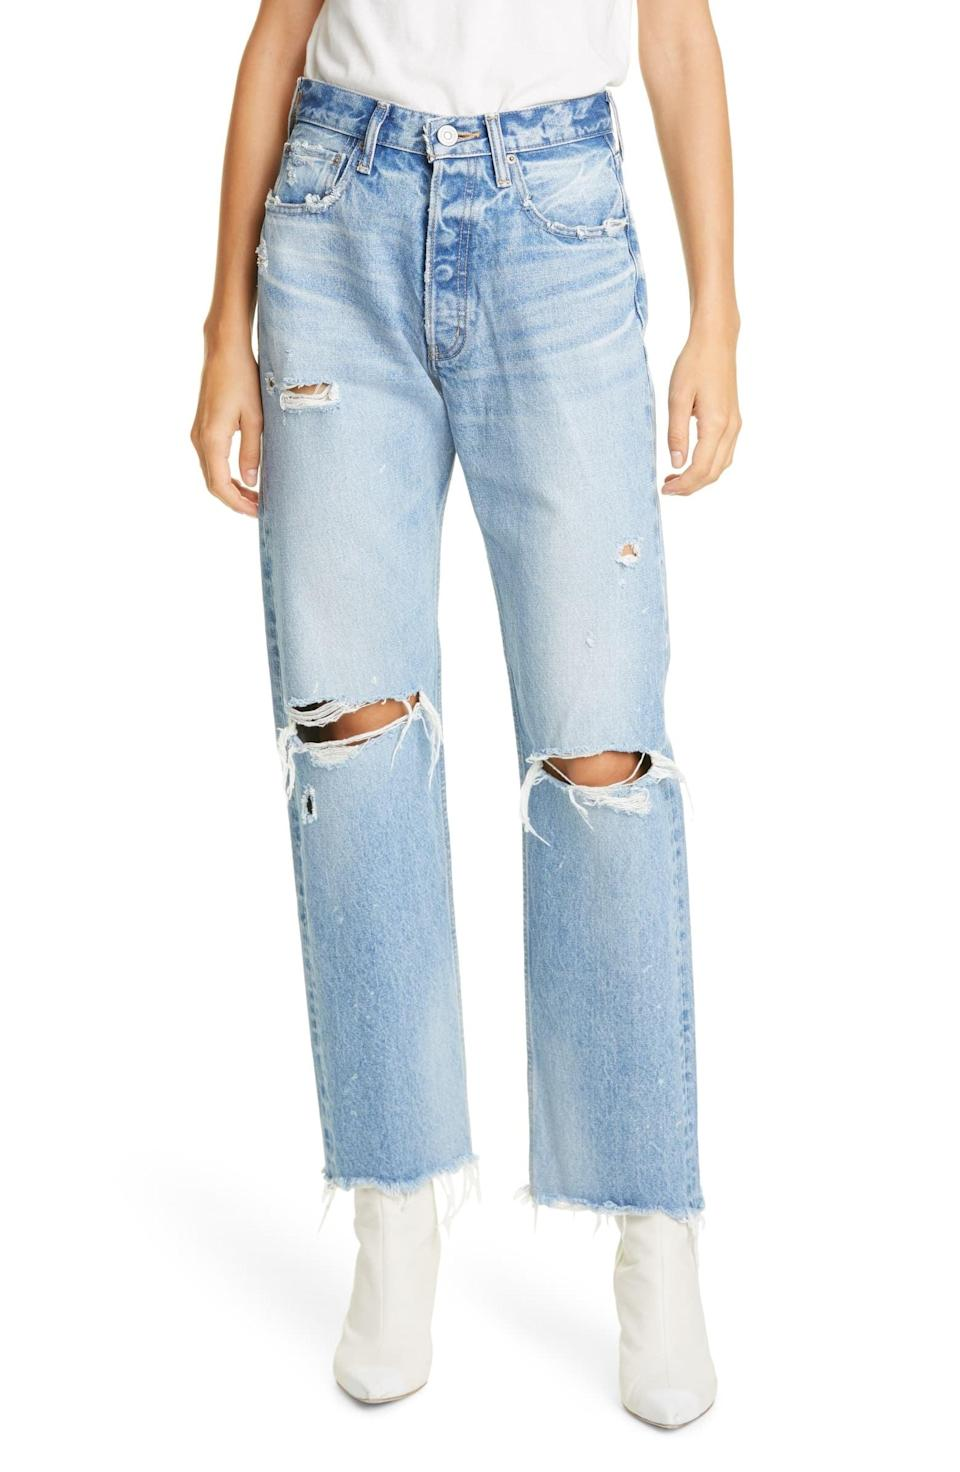 <p>If you're looking for a rigid, vintage-inspired pair of jeans, these <span>Moussy Vintage Odessa Ripped Straight-Leg Jeans</span> ($350) are it. They look equally as good with a t-shirt as they do with a sexy going out top.</p>